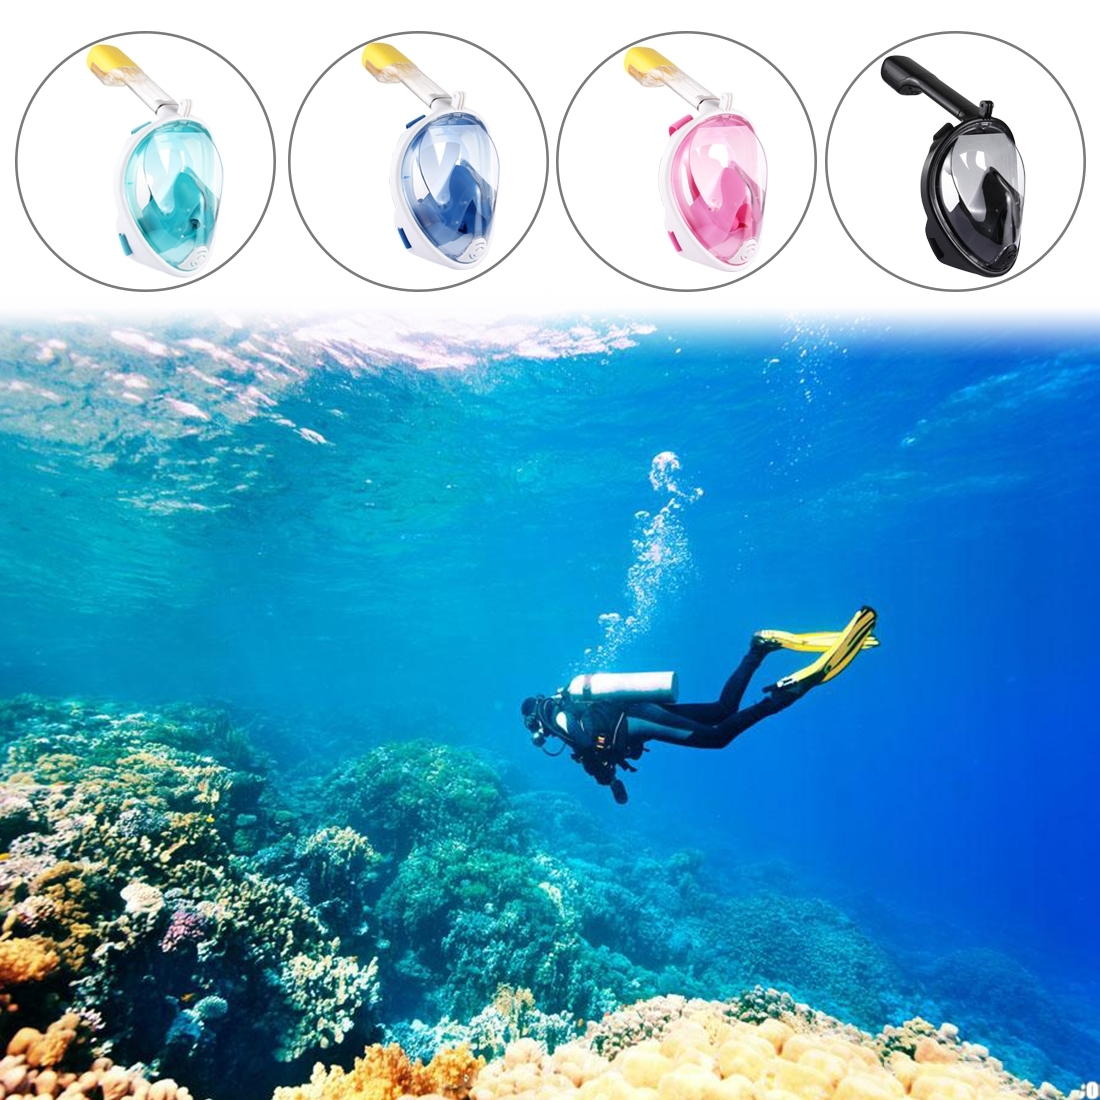 PULUZ 220mm Tube Water Sports Diving Equipment Full Dry Snorkel Mask for GoPro HERO5 /4 /3+ /3 /2 /1, L/XL Size (Blue)